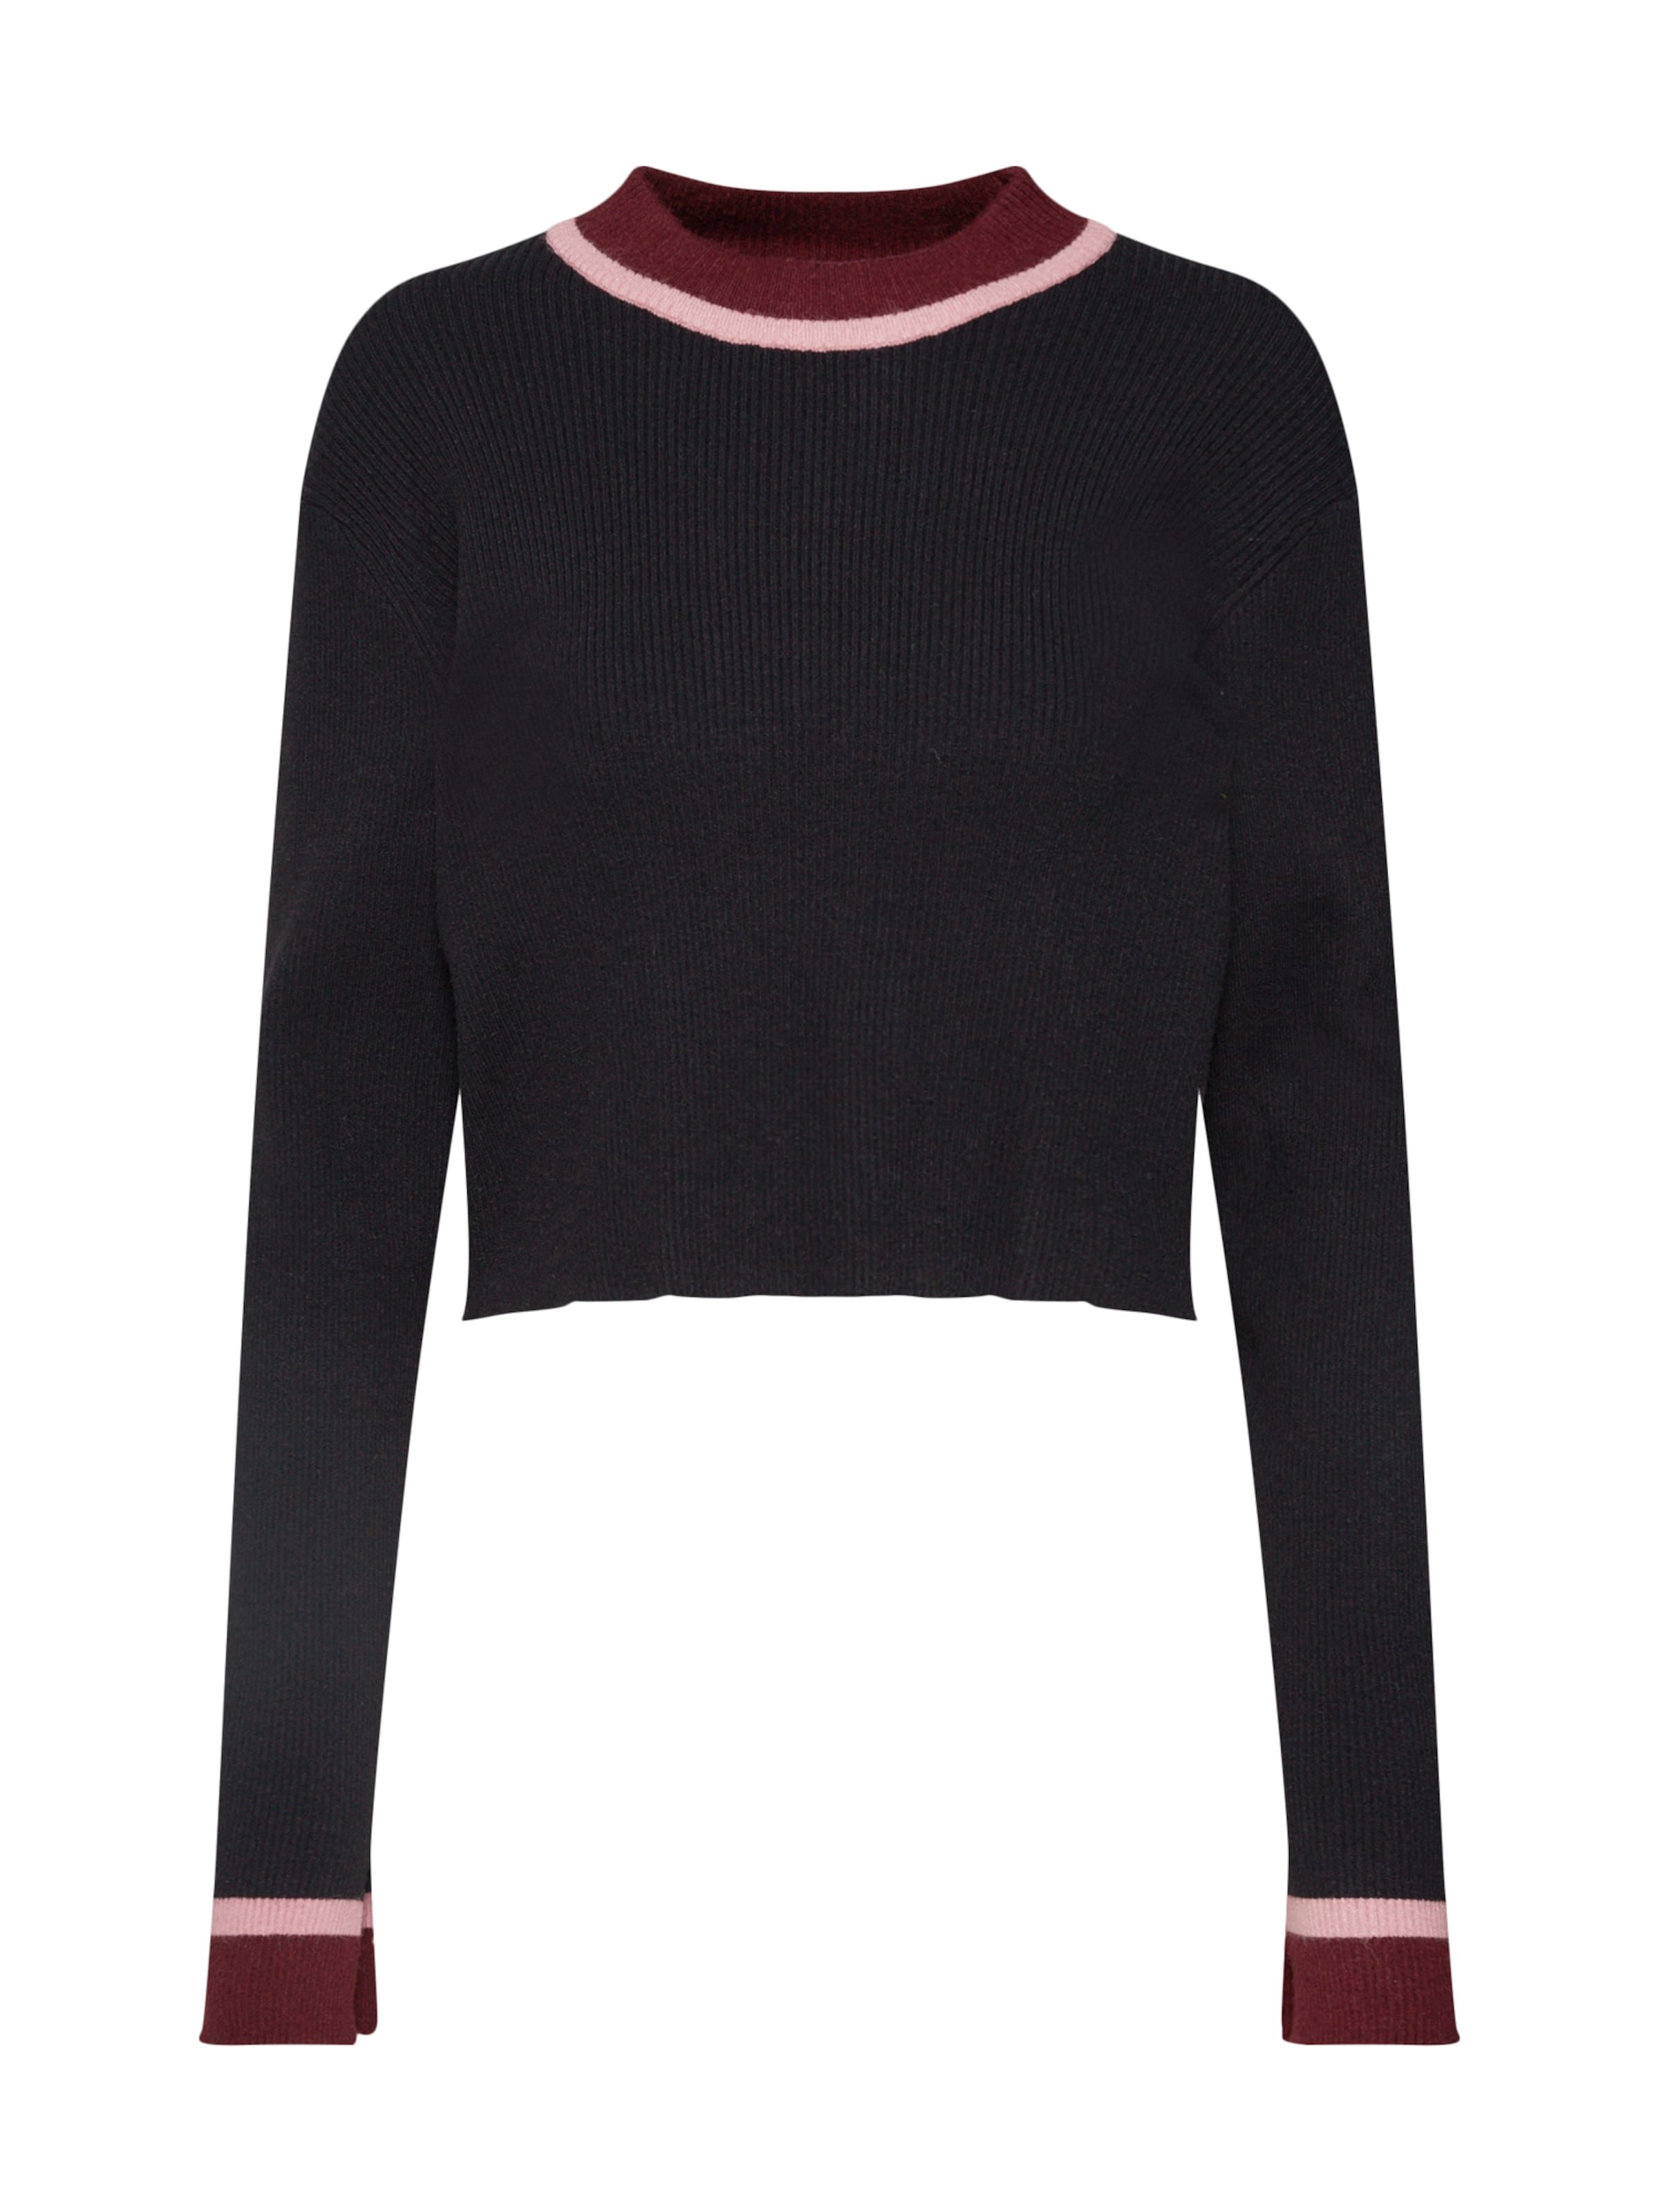 Patrisse In Native Pullover Youth RosaBordeaux 'the Knit' Schwarz CoxBrde